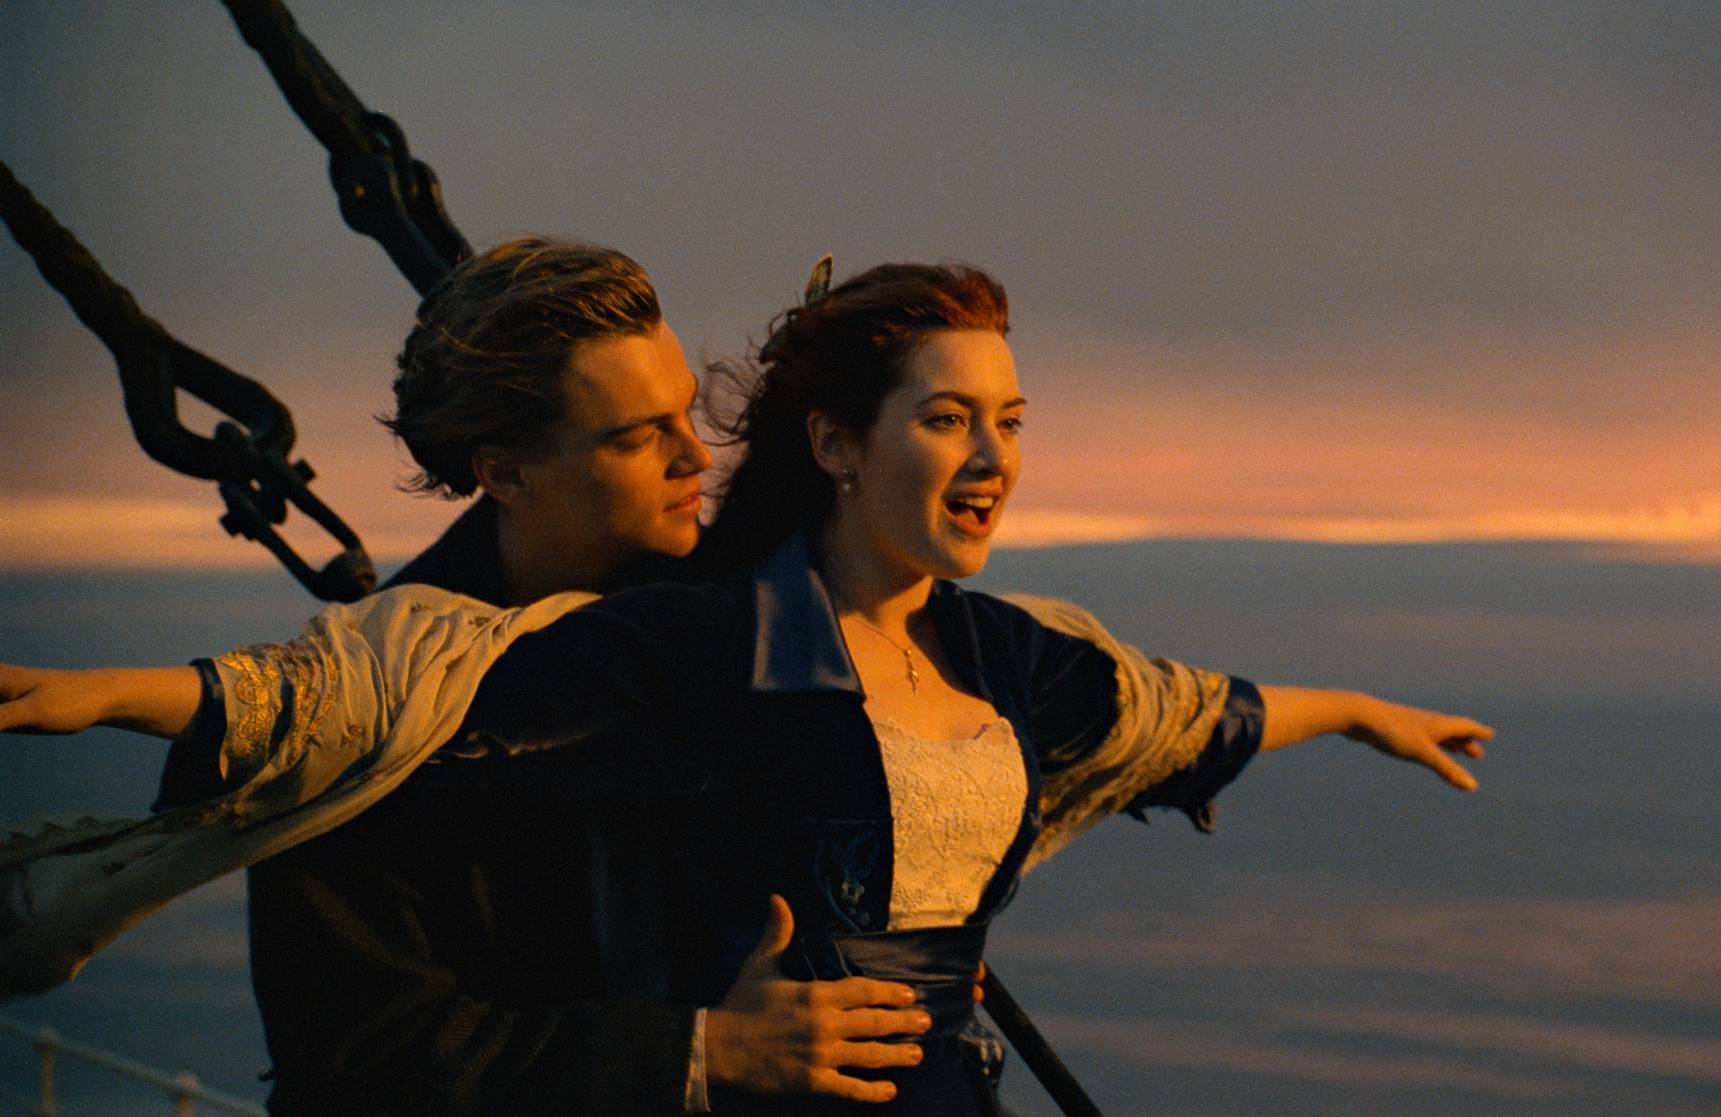 """This image released by Paramount Pictures shows Leonardo DiCaprio, left, and Kate Winslet in a scene from """"Titanic.""""  The film is among the 25 movies being added to the prestigious National Film Registry. (Paramount Pictures via AP)"""